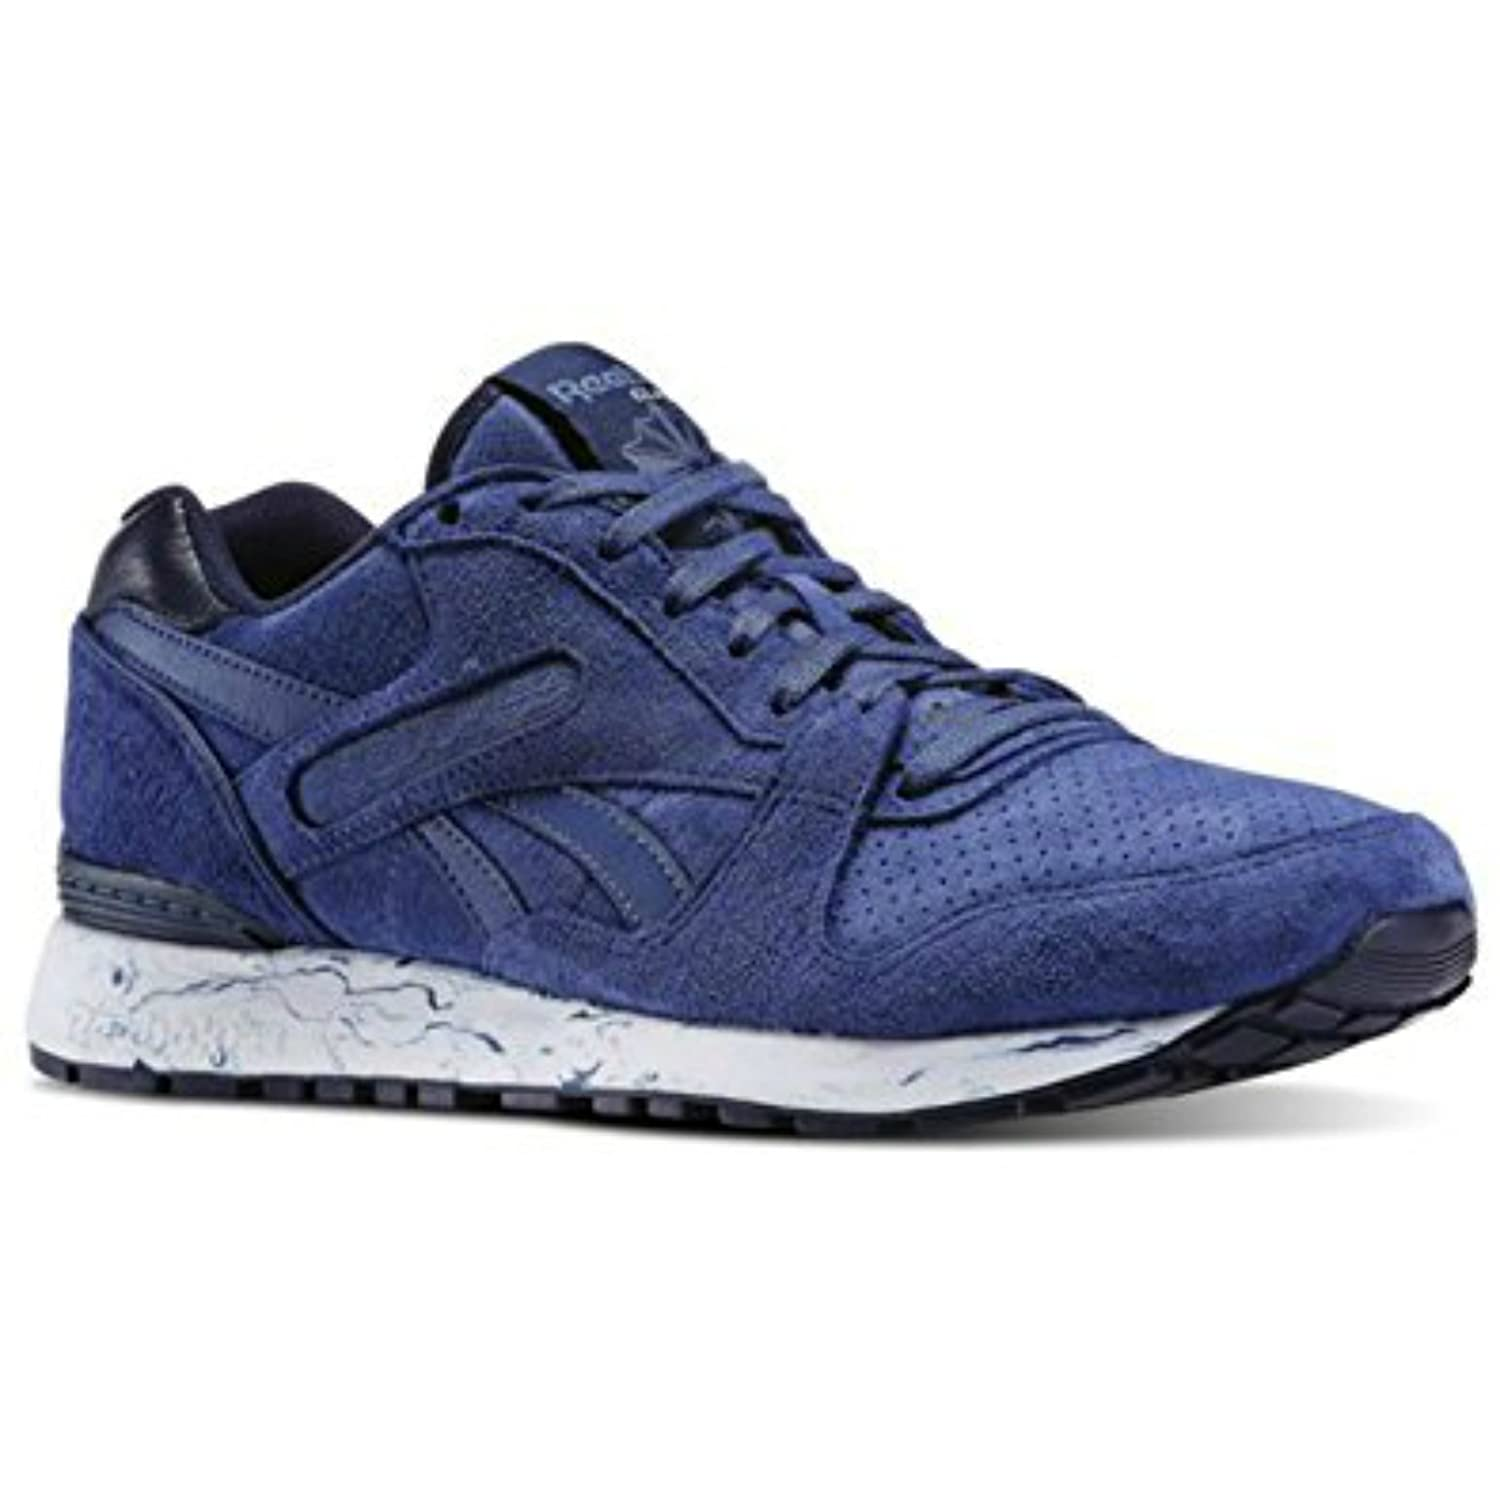 Reebok Mens GL 6000 MM Marbled Midsole Pack Casual Shoe Midnight Blue/Faux Indigo/Opal/White/Collegiate Navy B01MYZEY7T 12 D(M) US